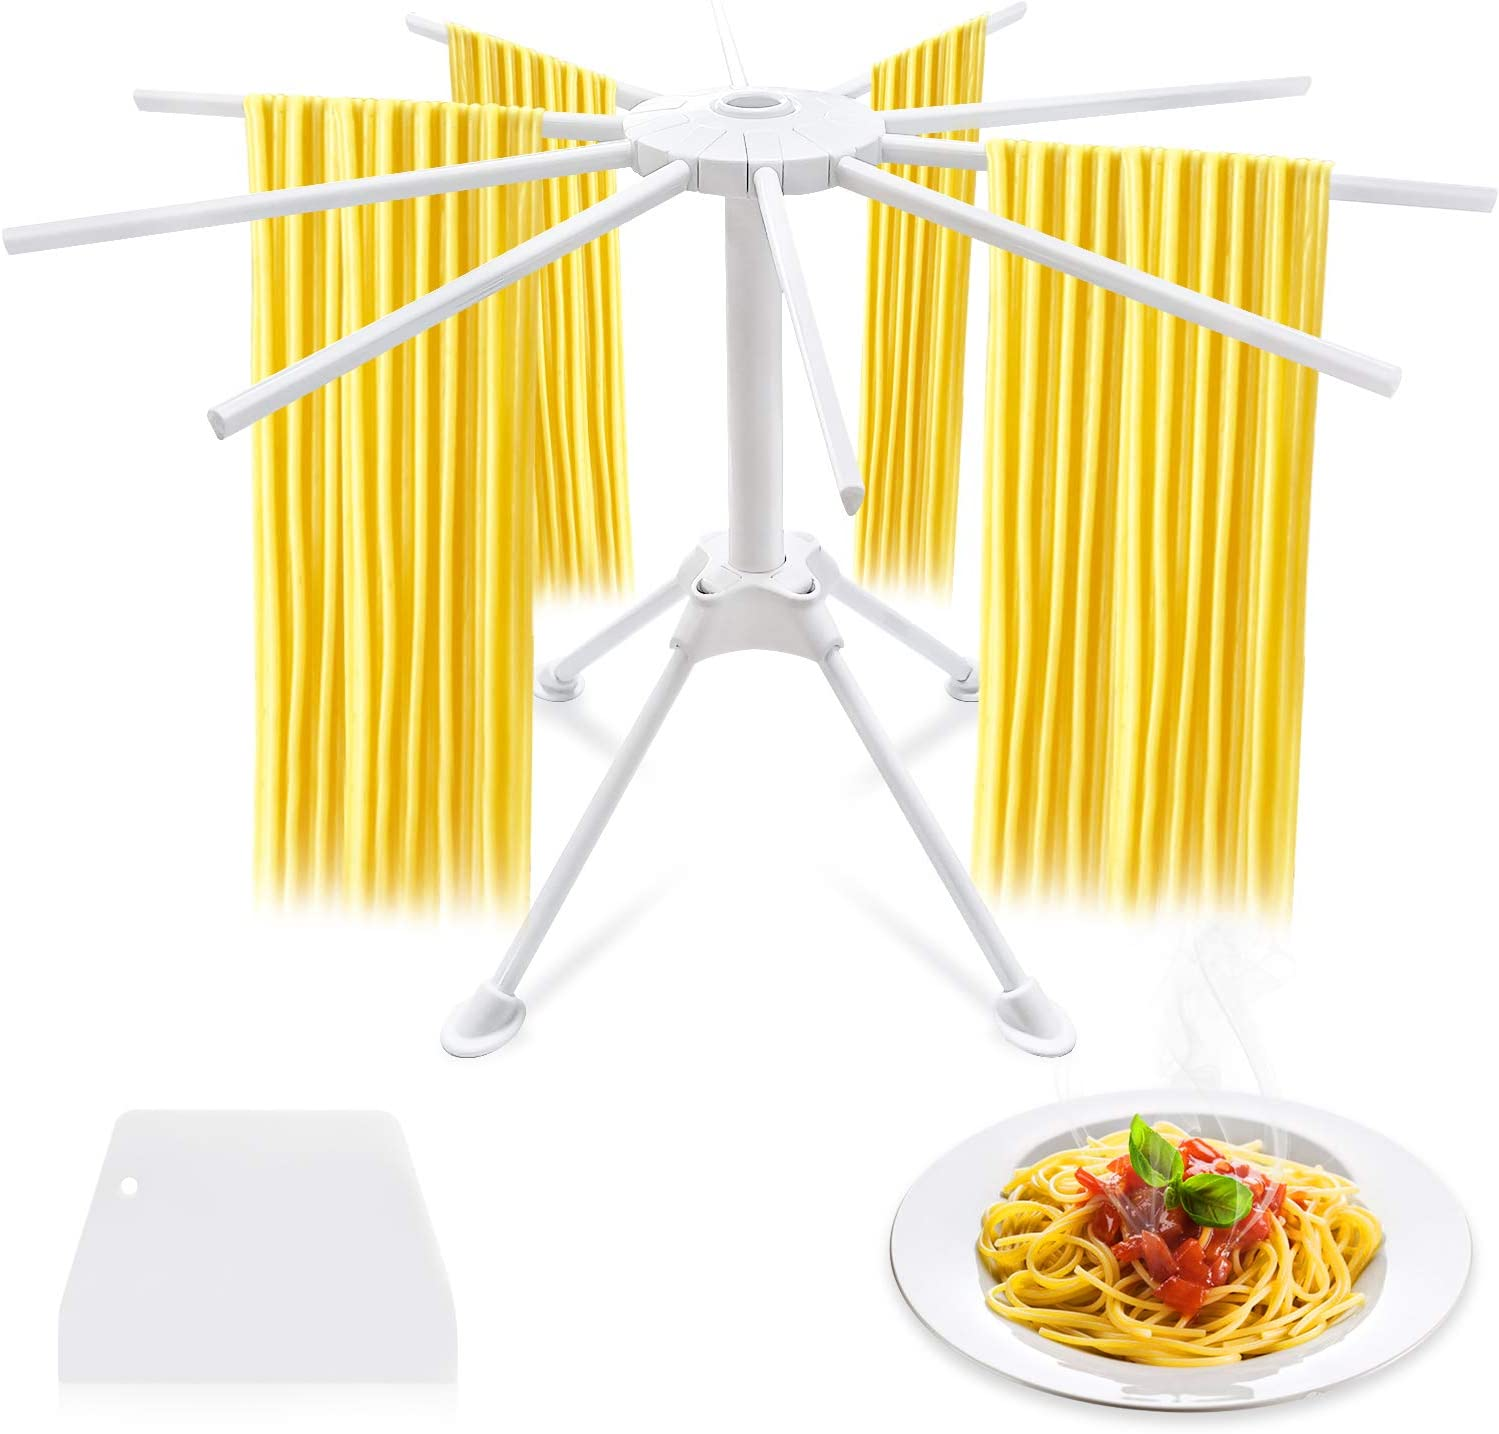 Yifeid Pasta Drying Rack Collapsible 10 kitchen Max 66% OFF use Columbus Mall Easy Arms to